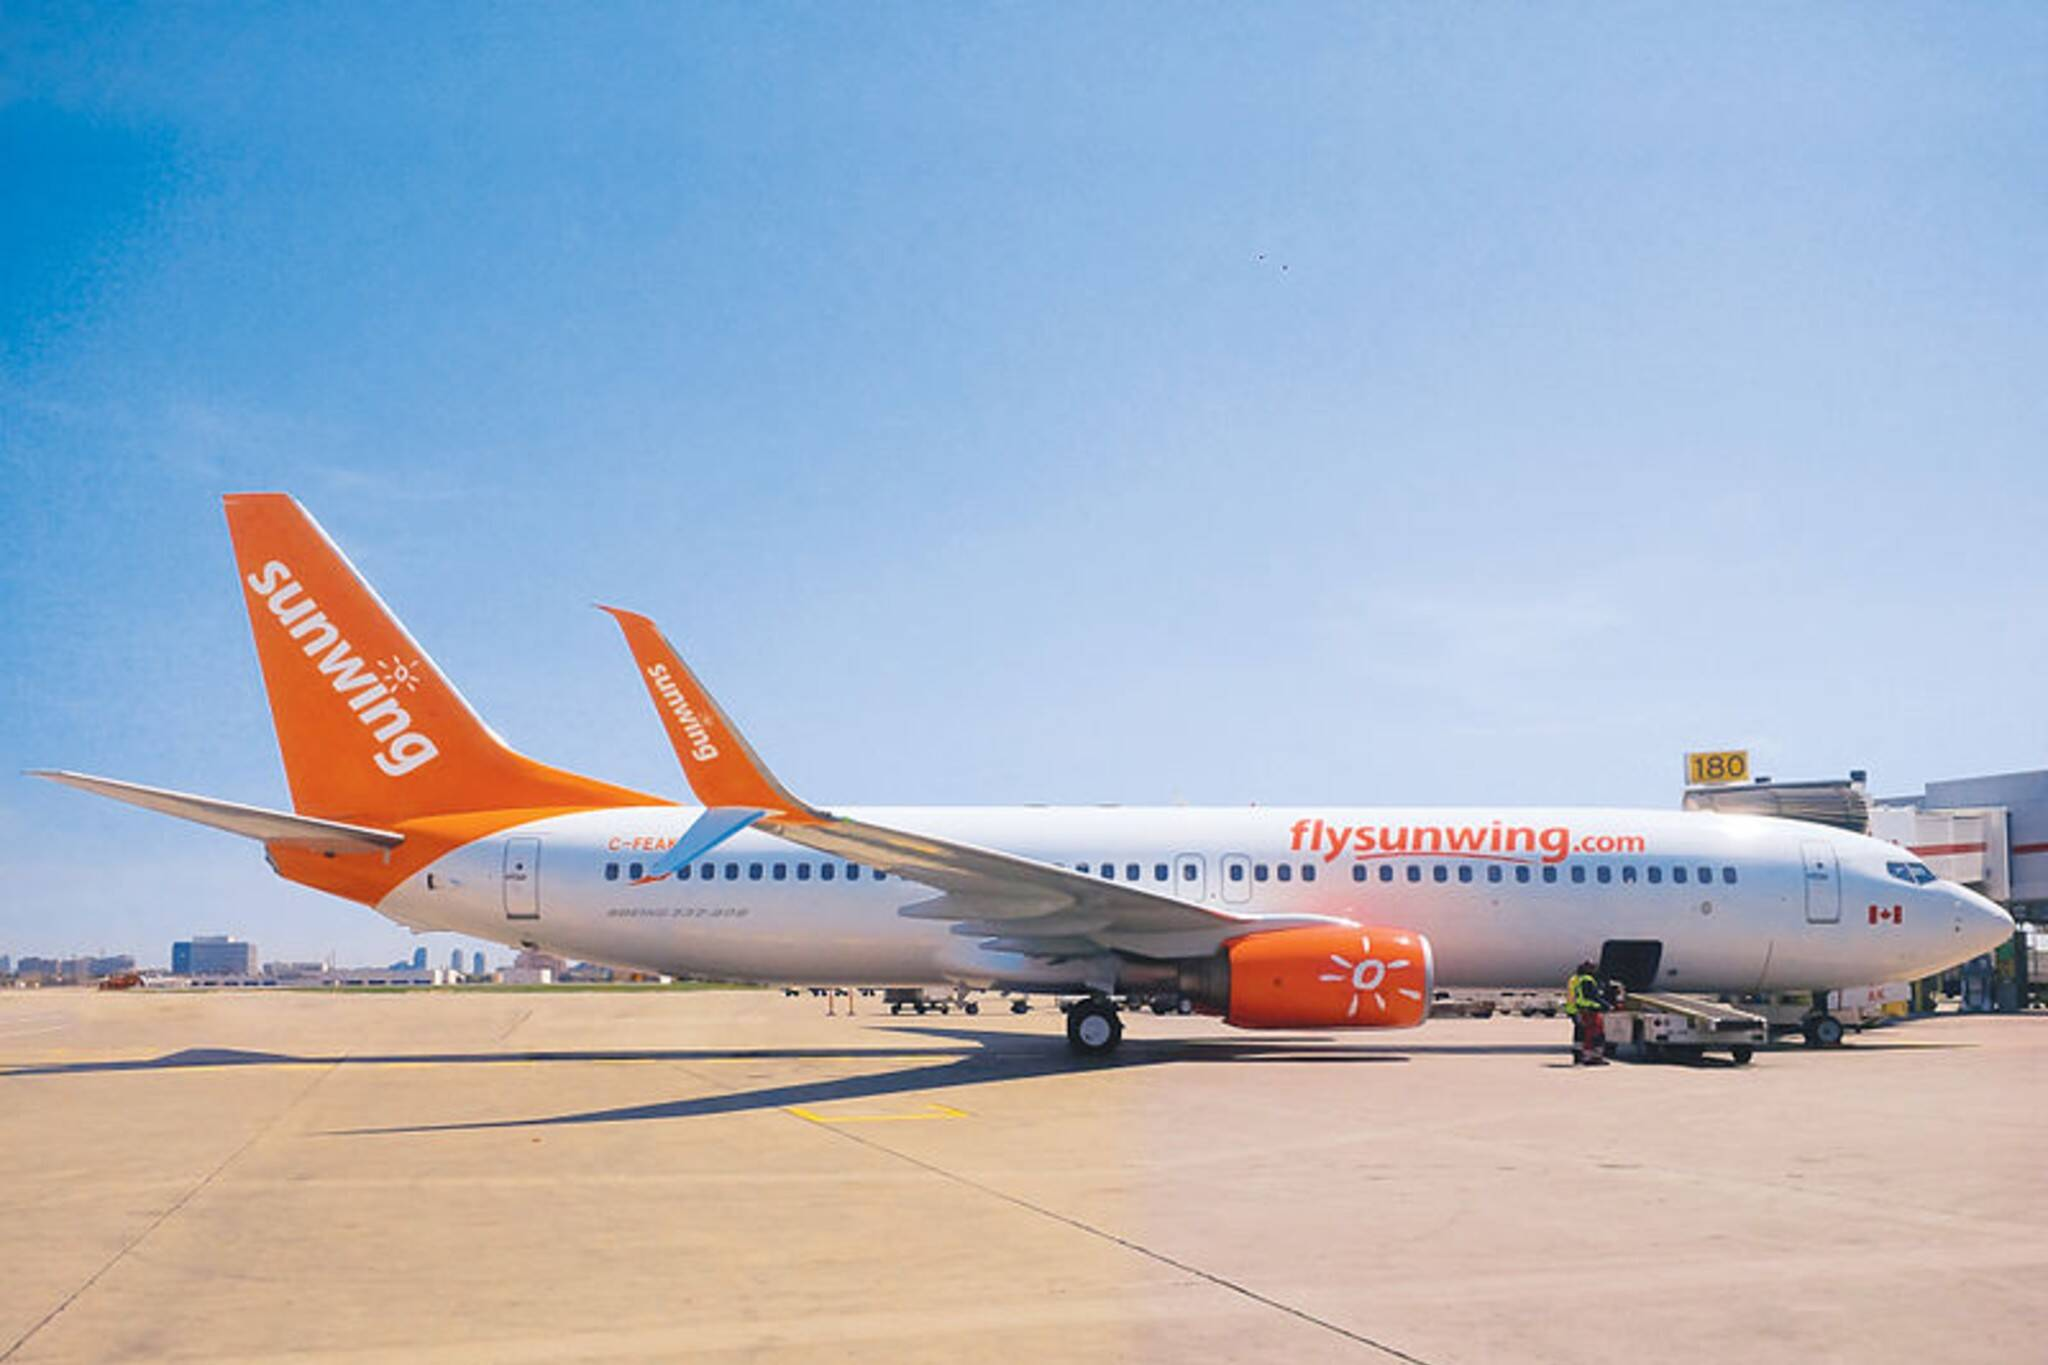 sunwing crash